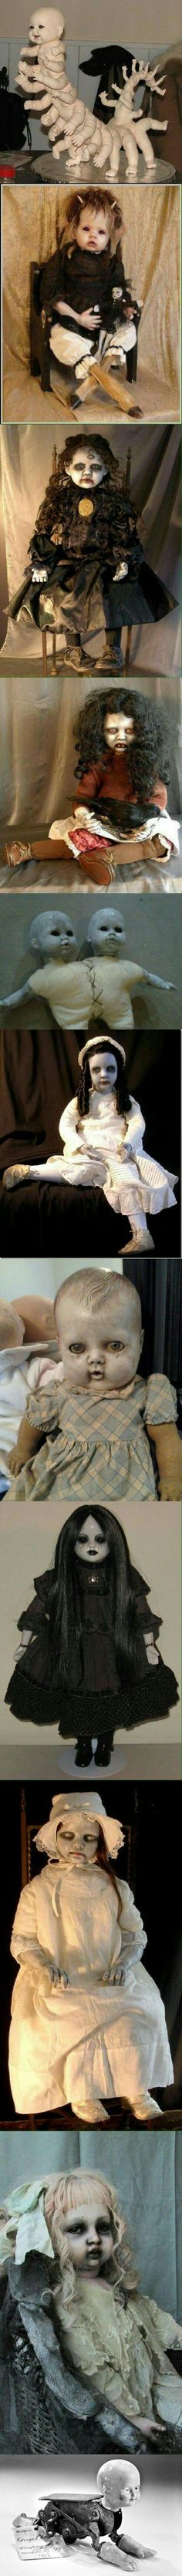 Insanely creepy dolls to add flavor on your dreams.